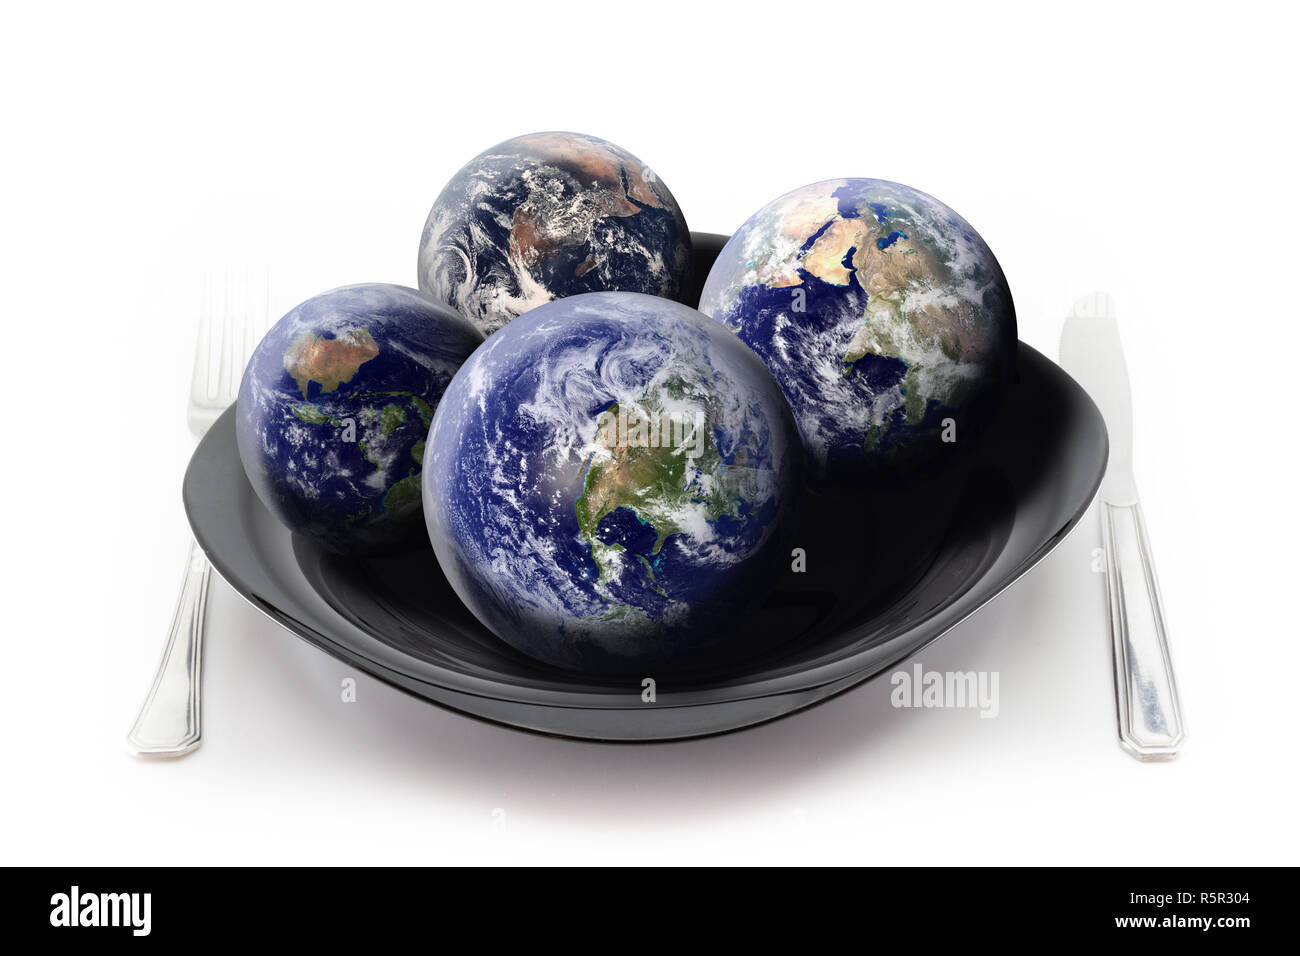 How many Earths do we need to satisfy our hunger? Concept about the overuse of our Planet. Isolated composite image made of a black china plate with c - Stock Image